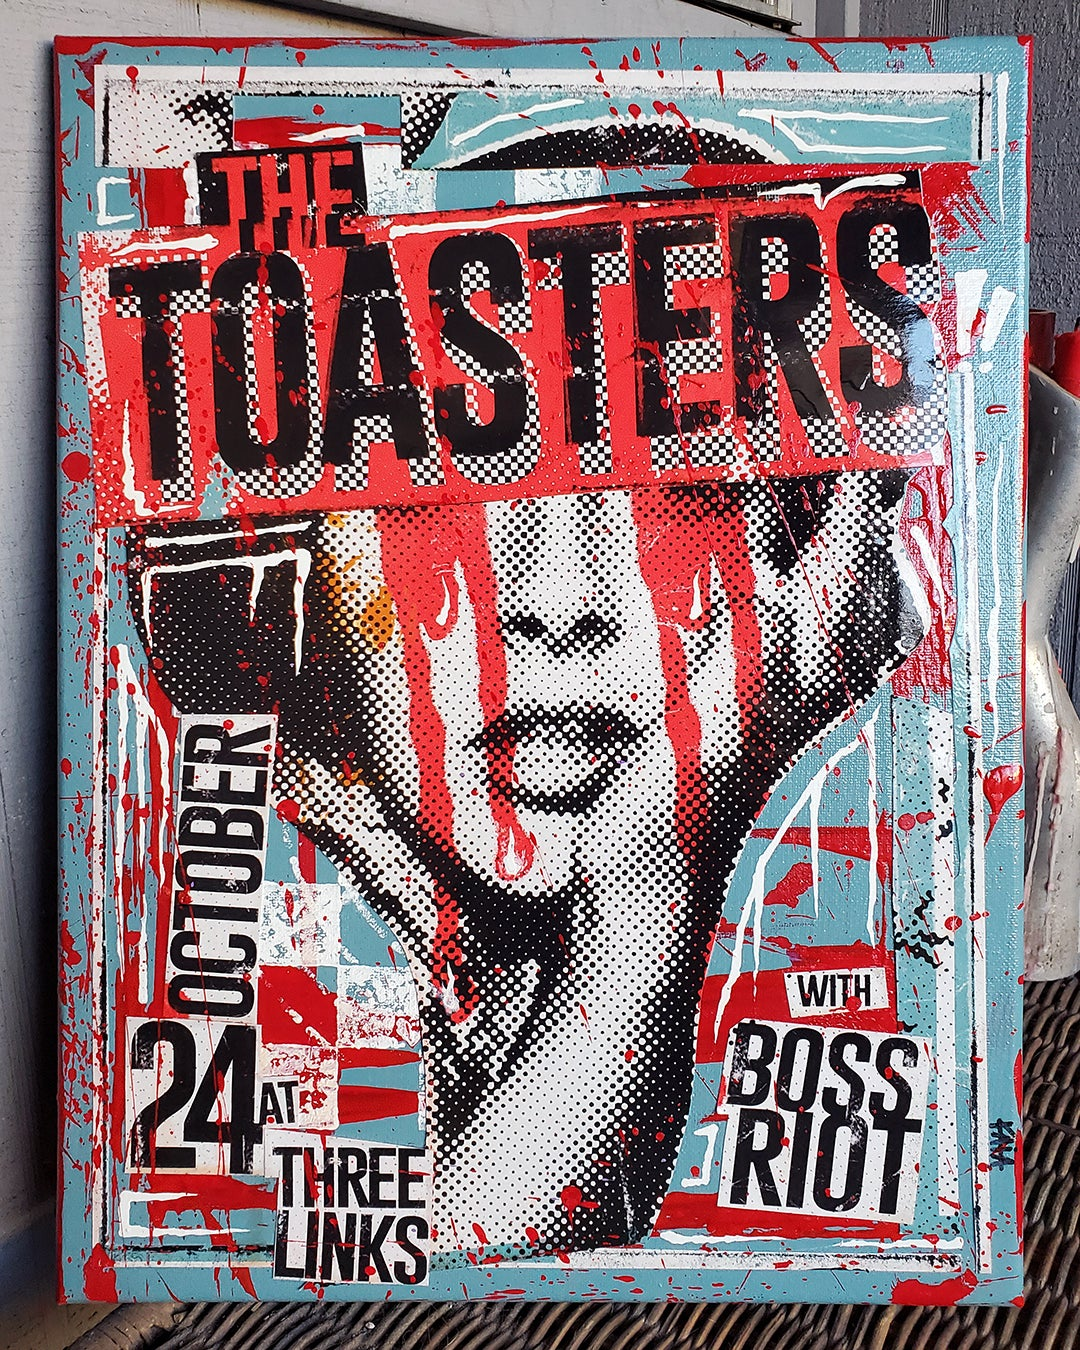 The Toasters 2018 (12x16 canvas)